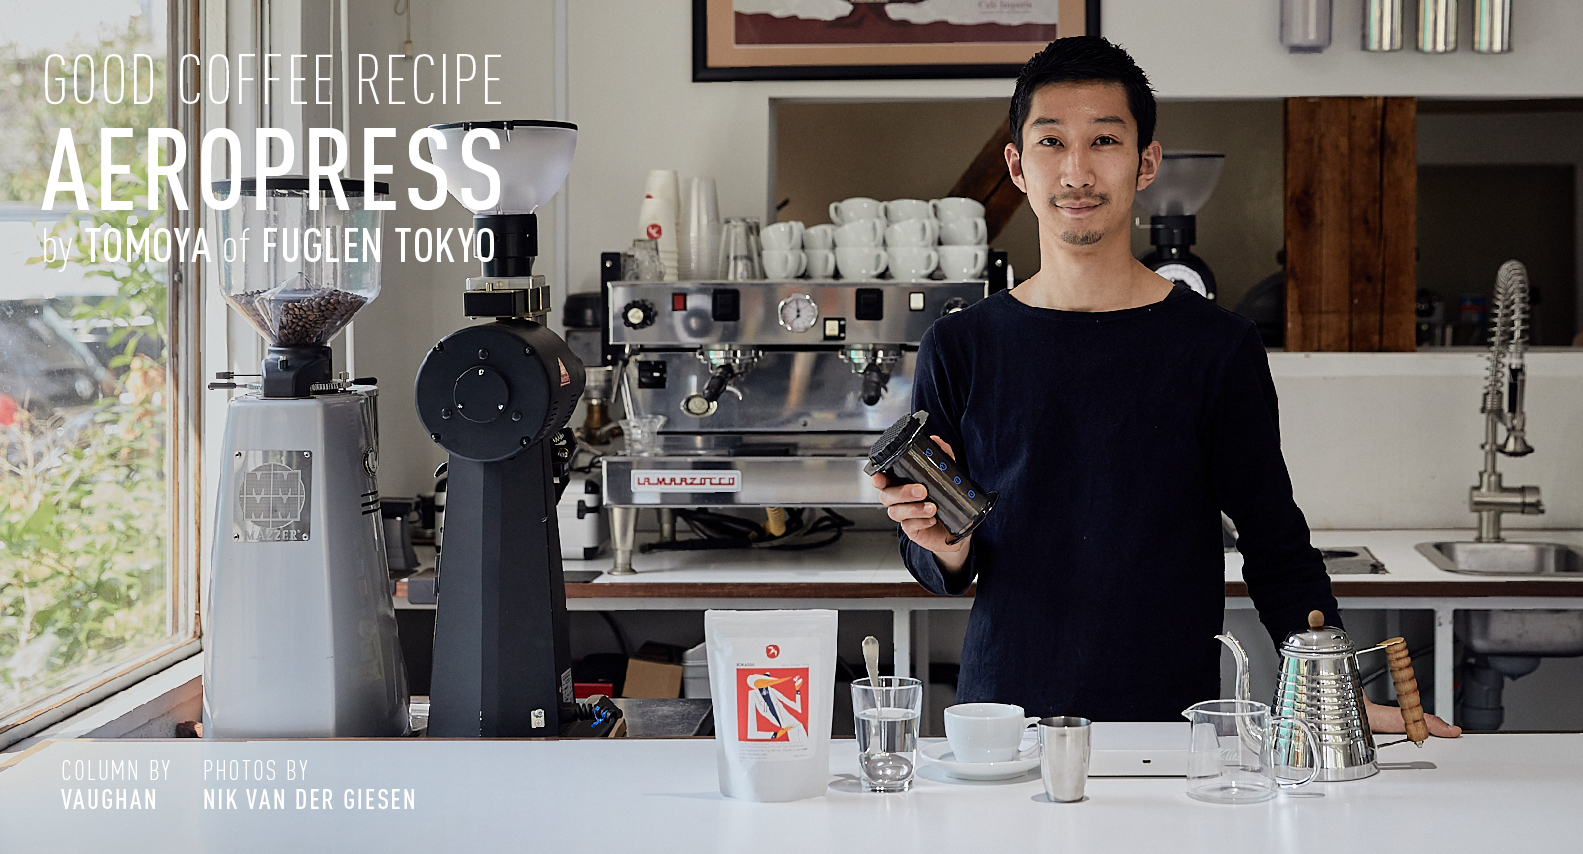 GOOD COFFEE RECIPE AEROPRESS by TOMOYA YAZAKI of FUGLEN COFFEE ROASTERS